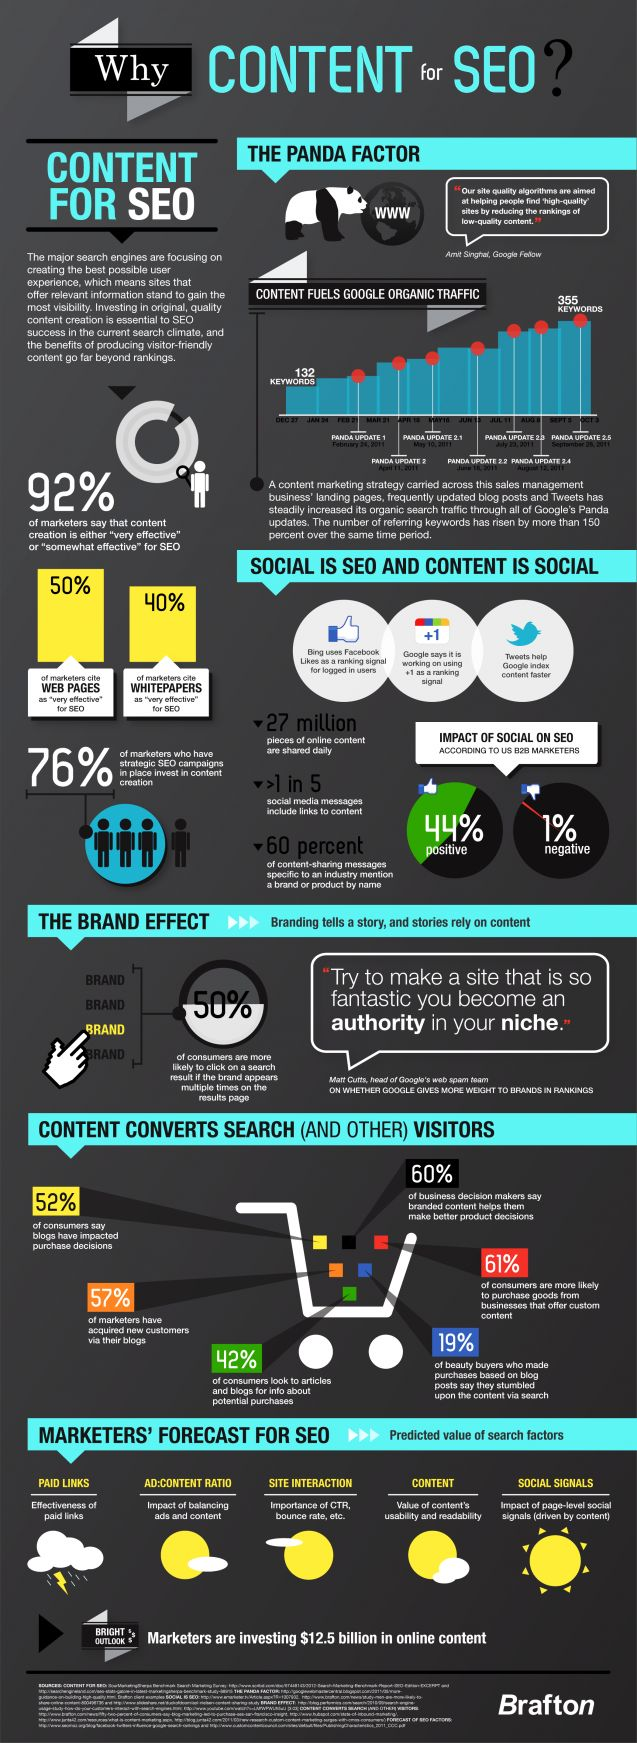 Why is Content Good for SEO